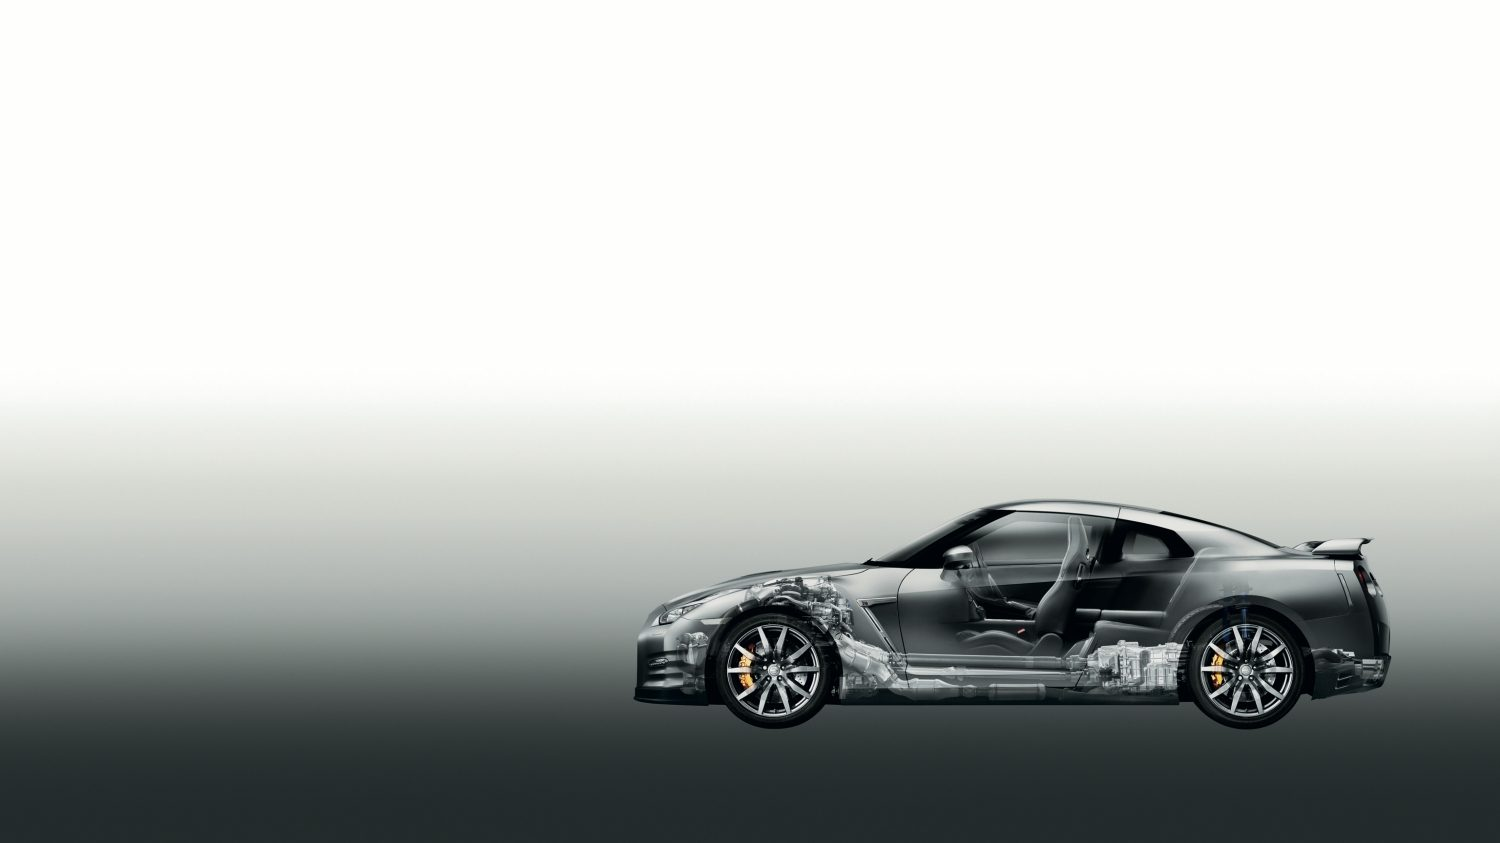 Nissan GT-R - side view of car